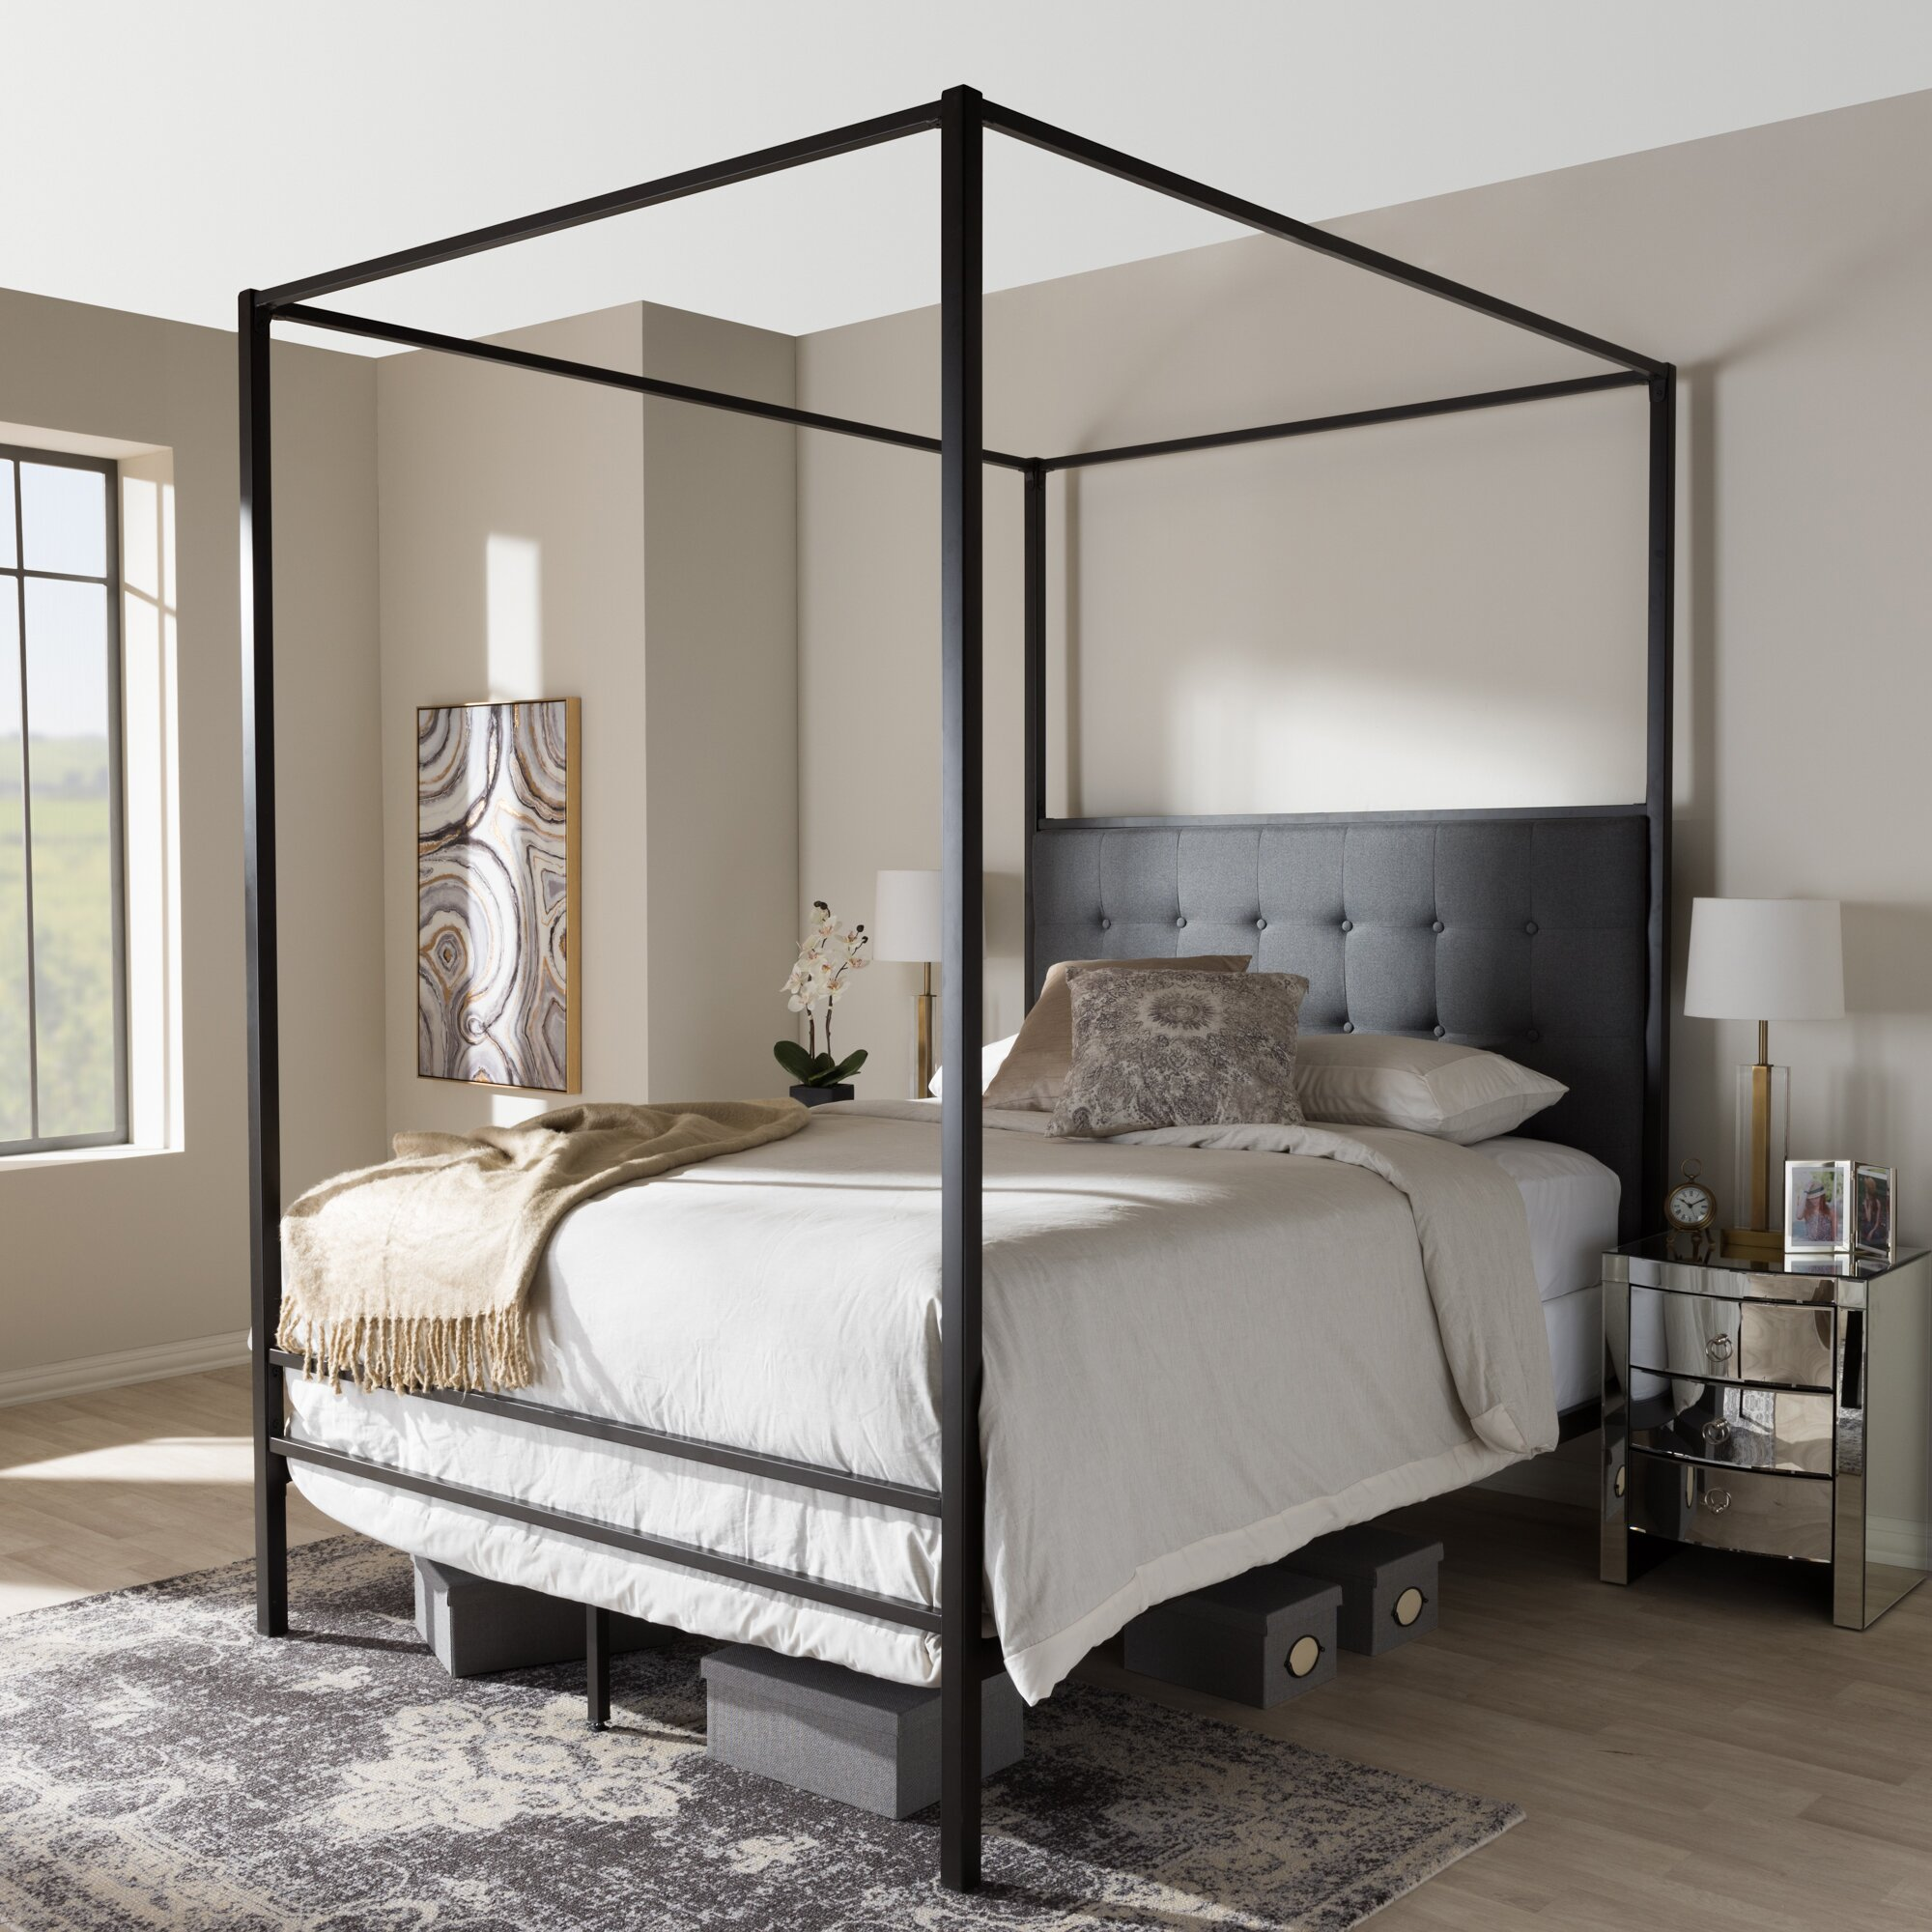 Canopy Beds You'll Love | Wayfair - Baxton Studio Margherita Queen Canopy Bed